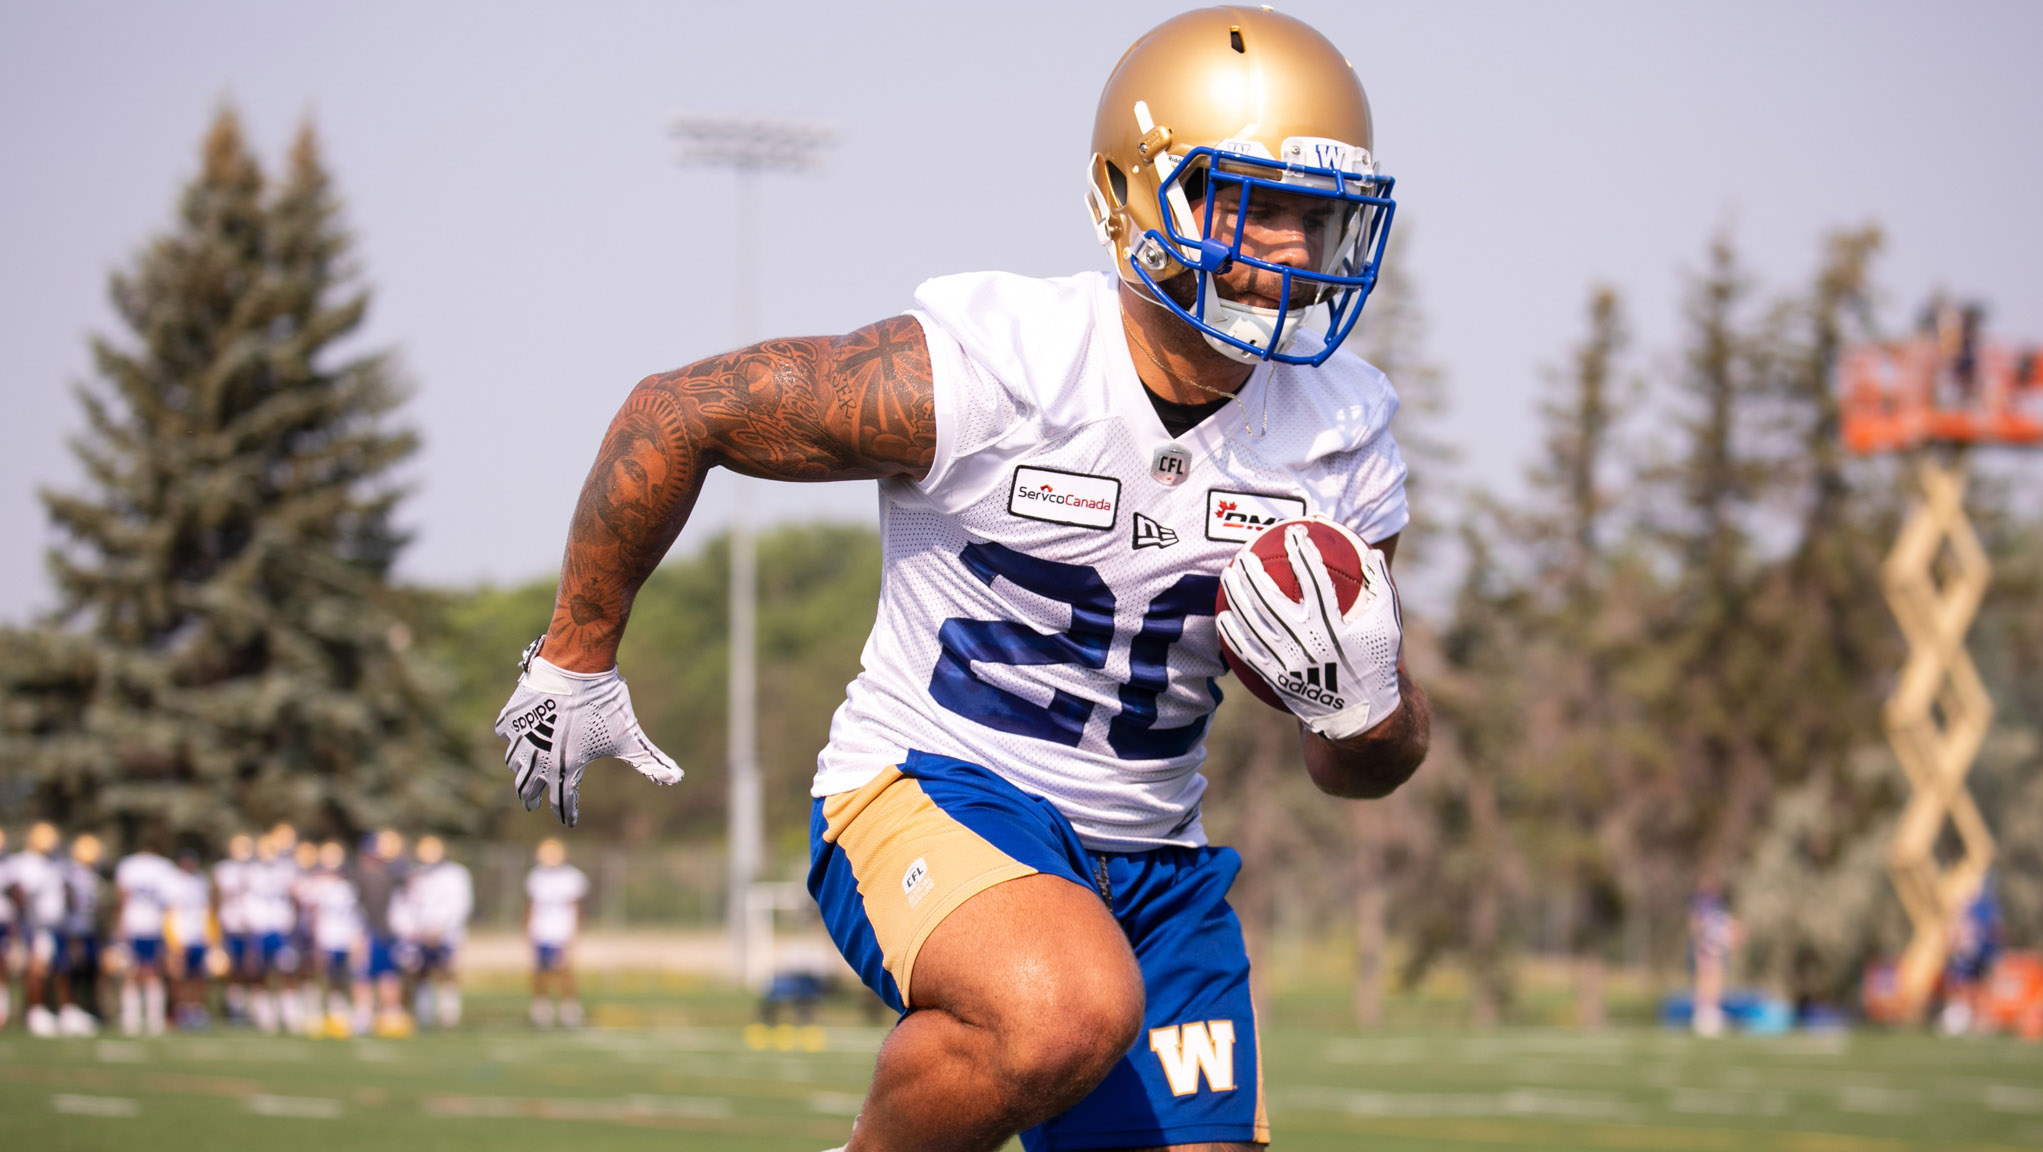 Tait: All eyes on Bombers' backfield as camp wraps